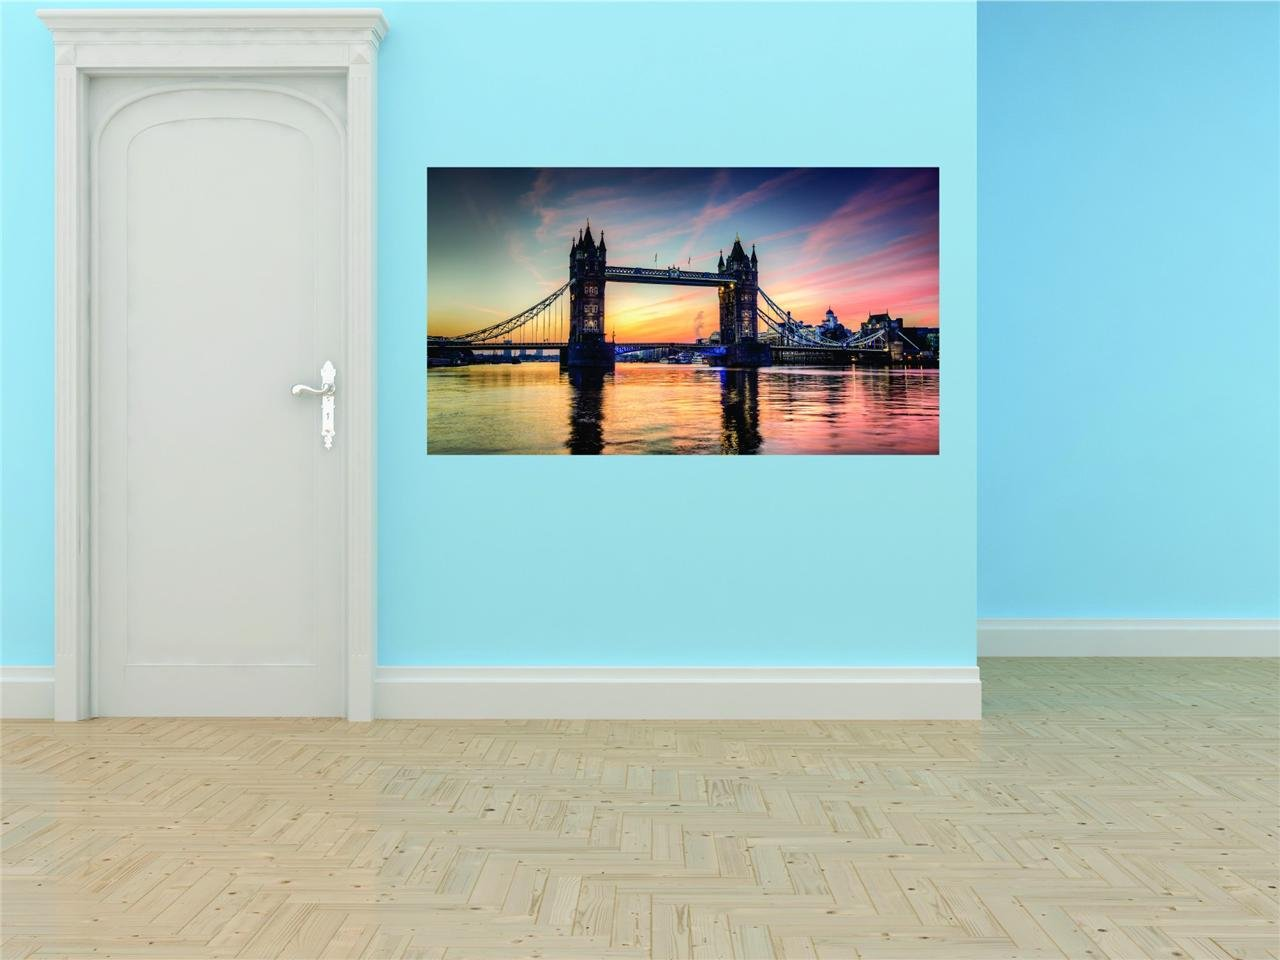 Tower Bridge London Victorian Gothic Style Water Scene Graphic Design Image Living Room Home Decor Vinyl Wall - Best Selling Cling Transfer Decal Color 586Size : 20 Inches X 40 Inches - 22 Colors Available